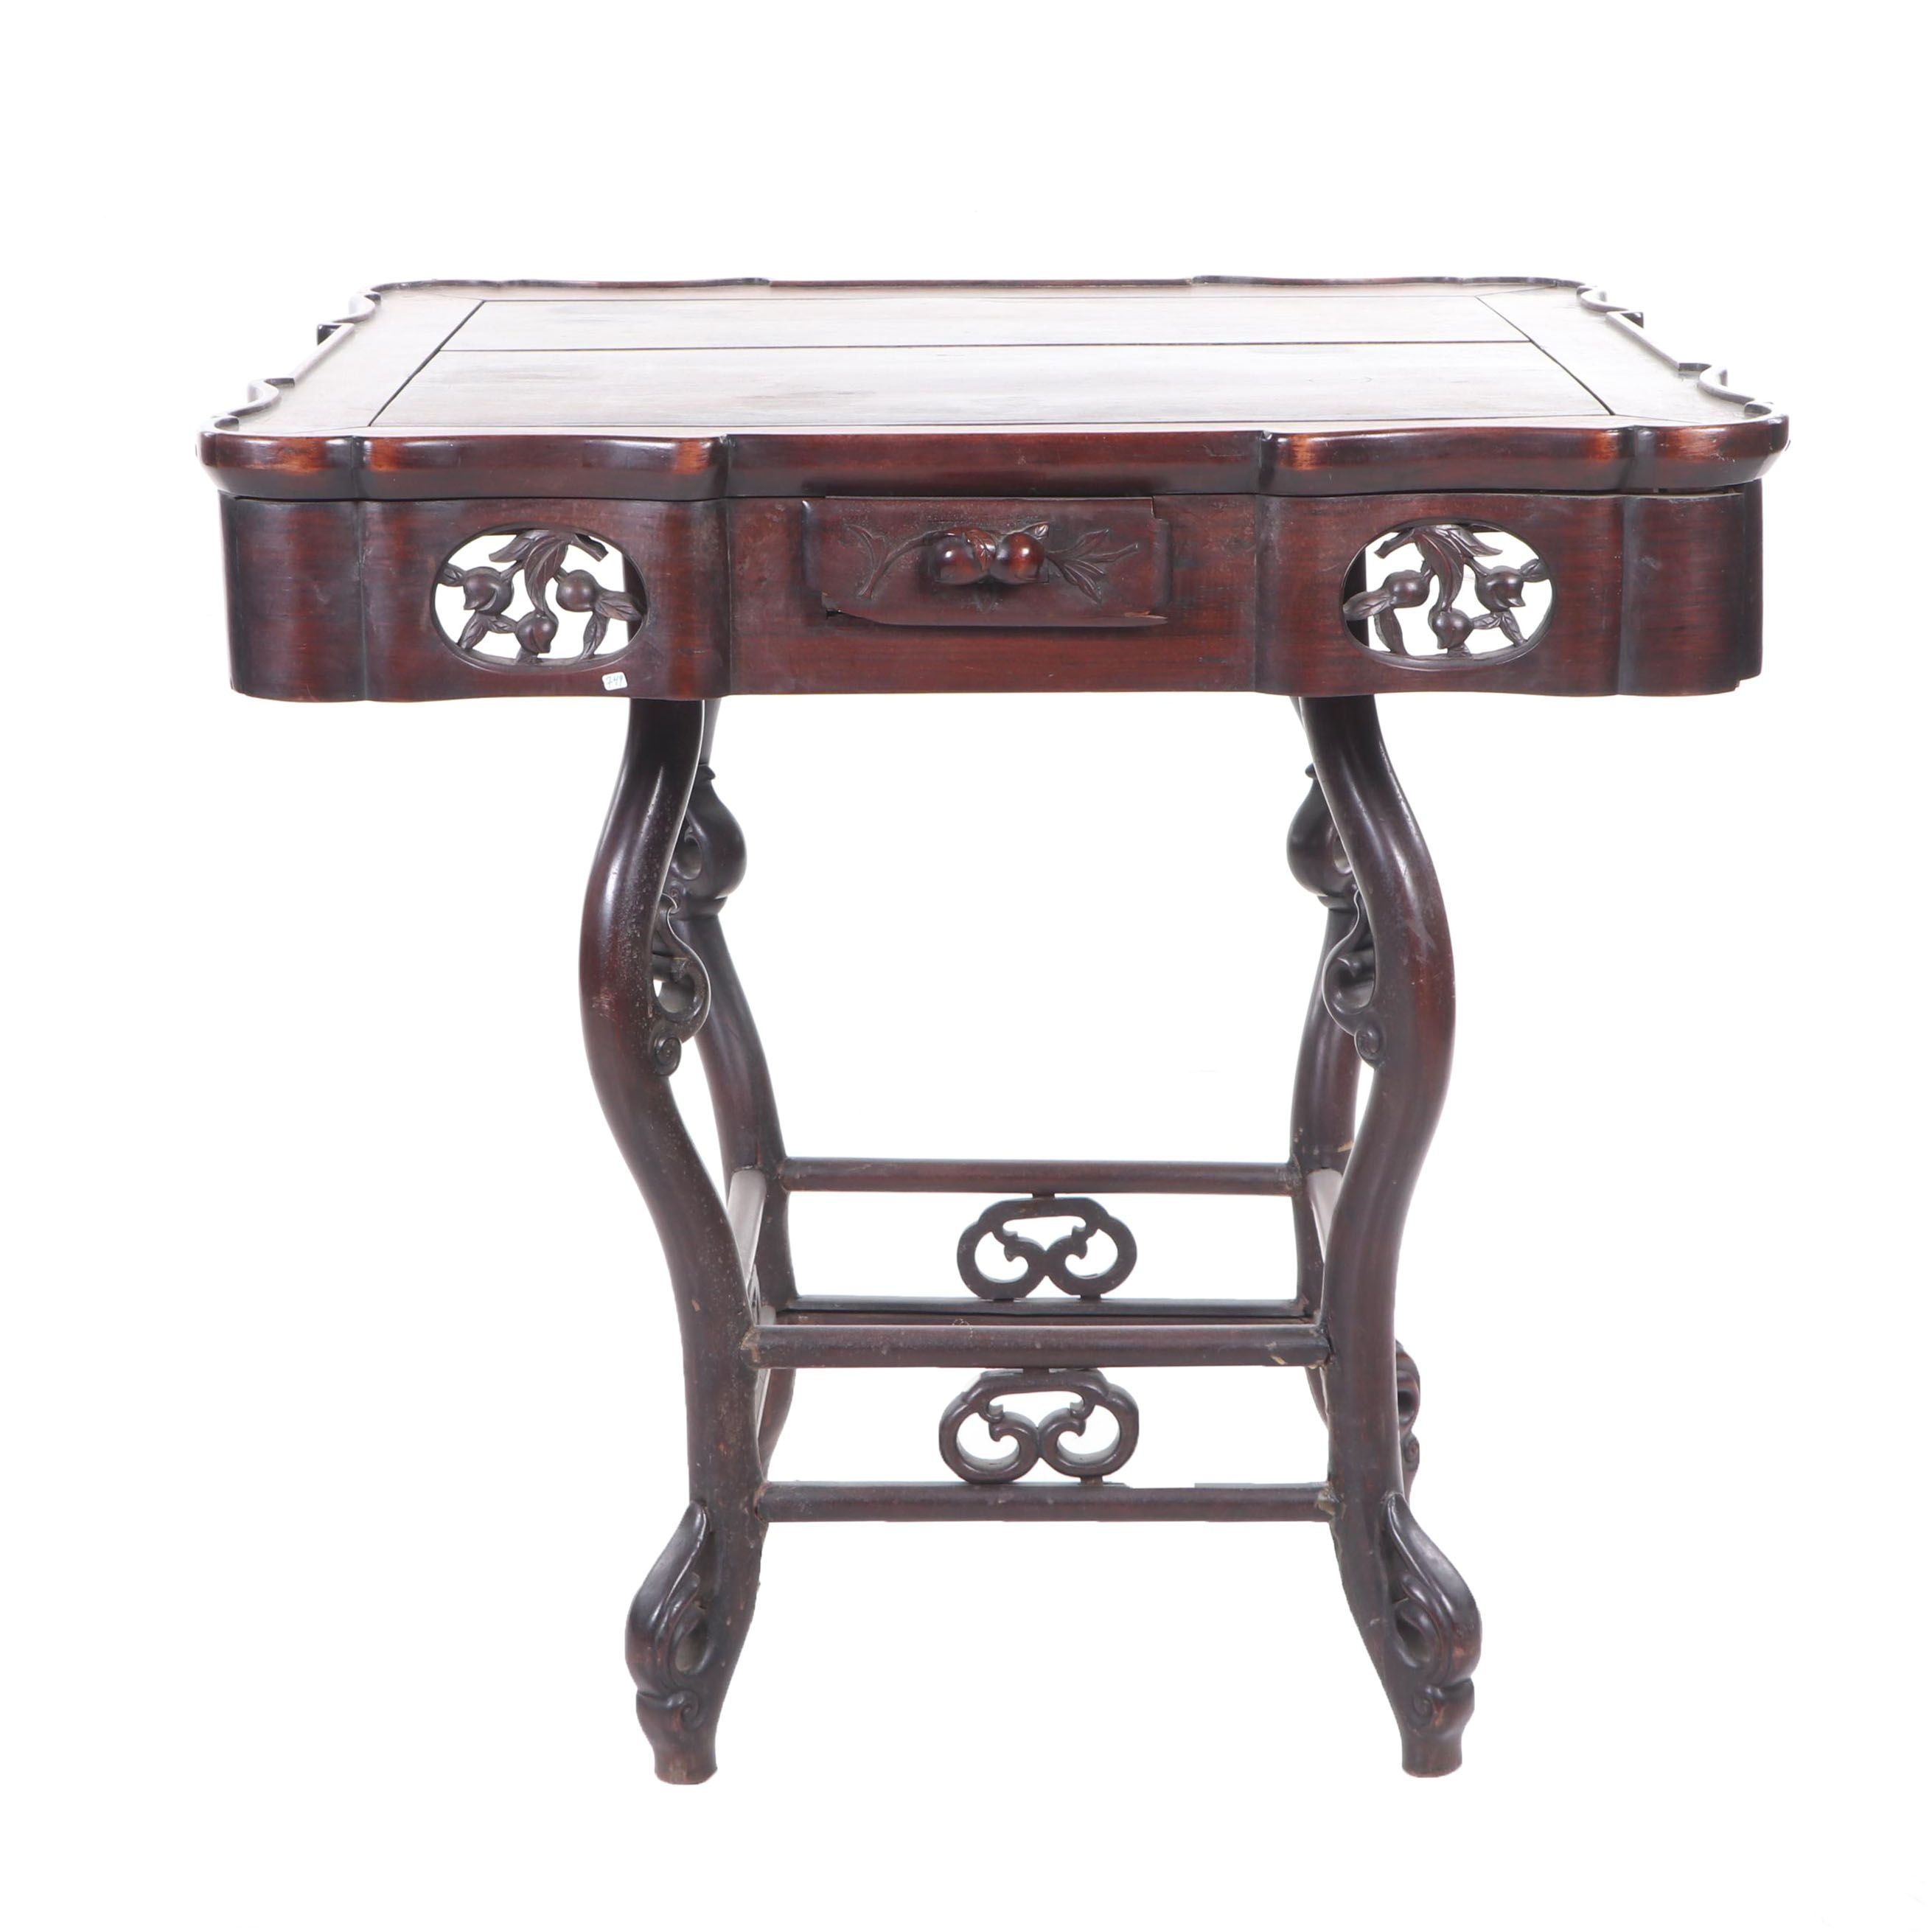 Chinese Wooden Games Table, Late 19th to Early 20th Century